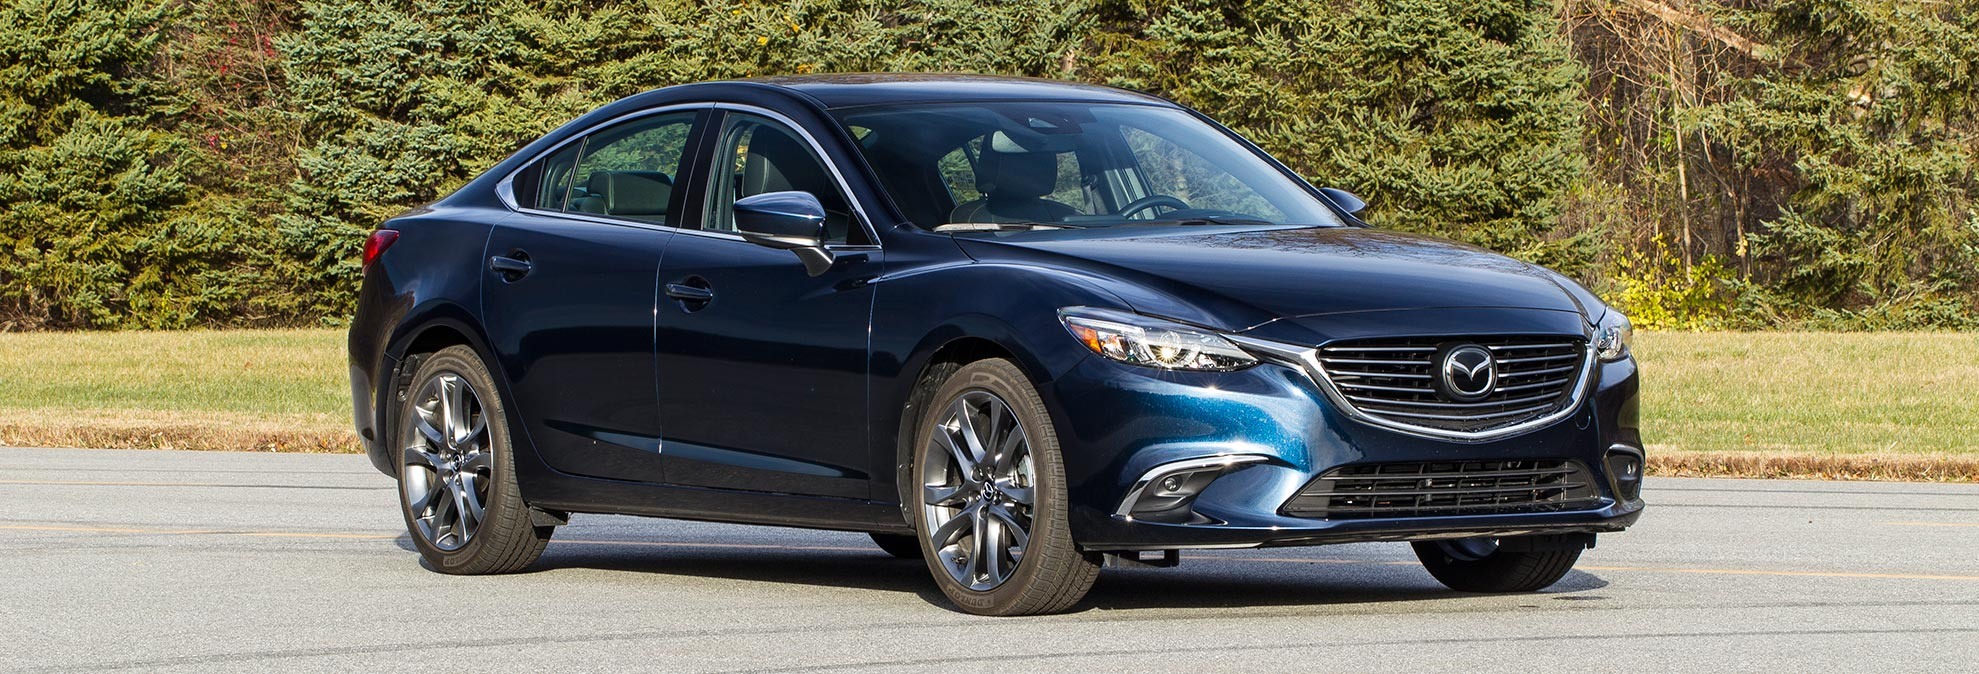 Stylish Frugal 2017 Mazda6 Sedan Consumer Reports